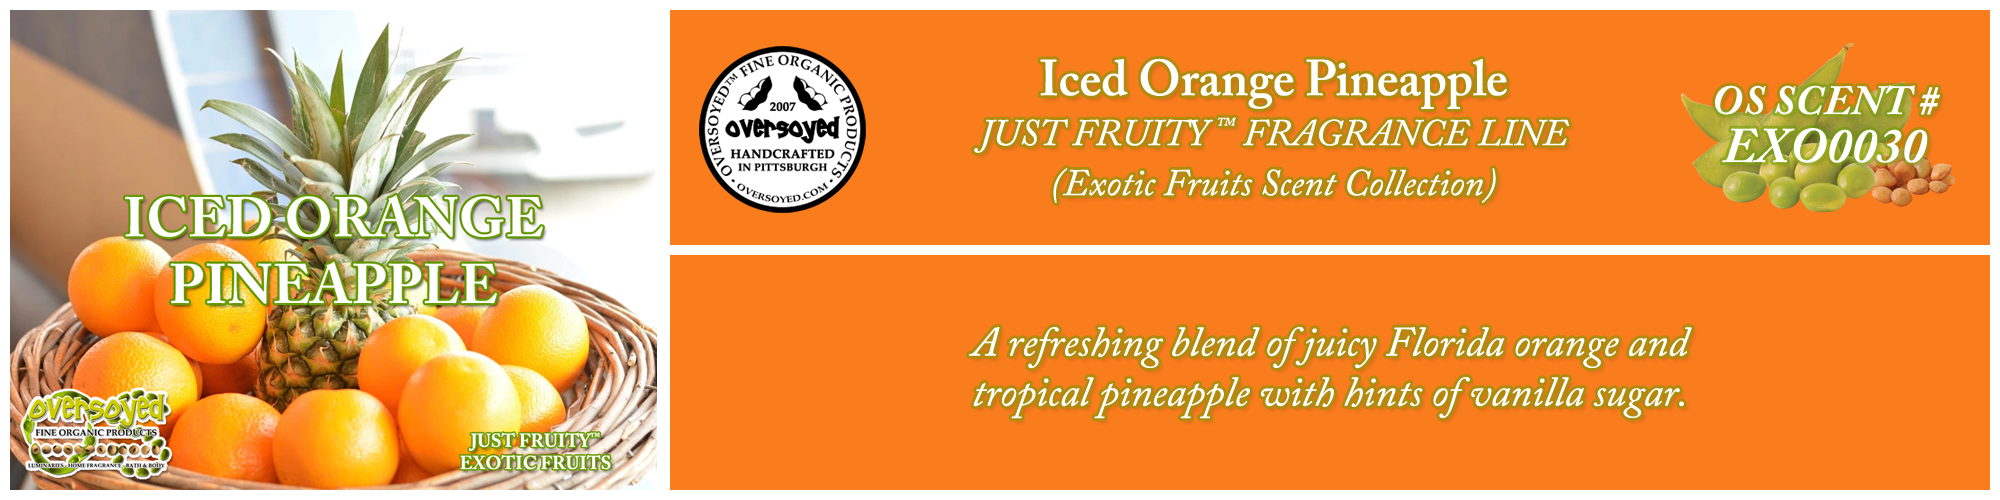 Iced Orange Pineapple Handcrafted Products Collection